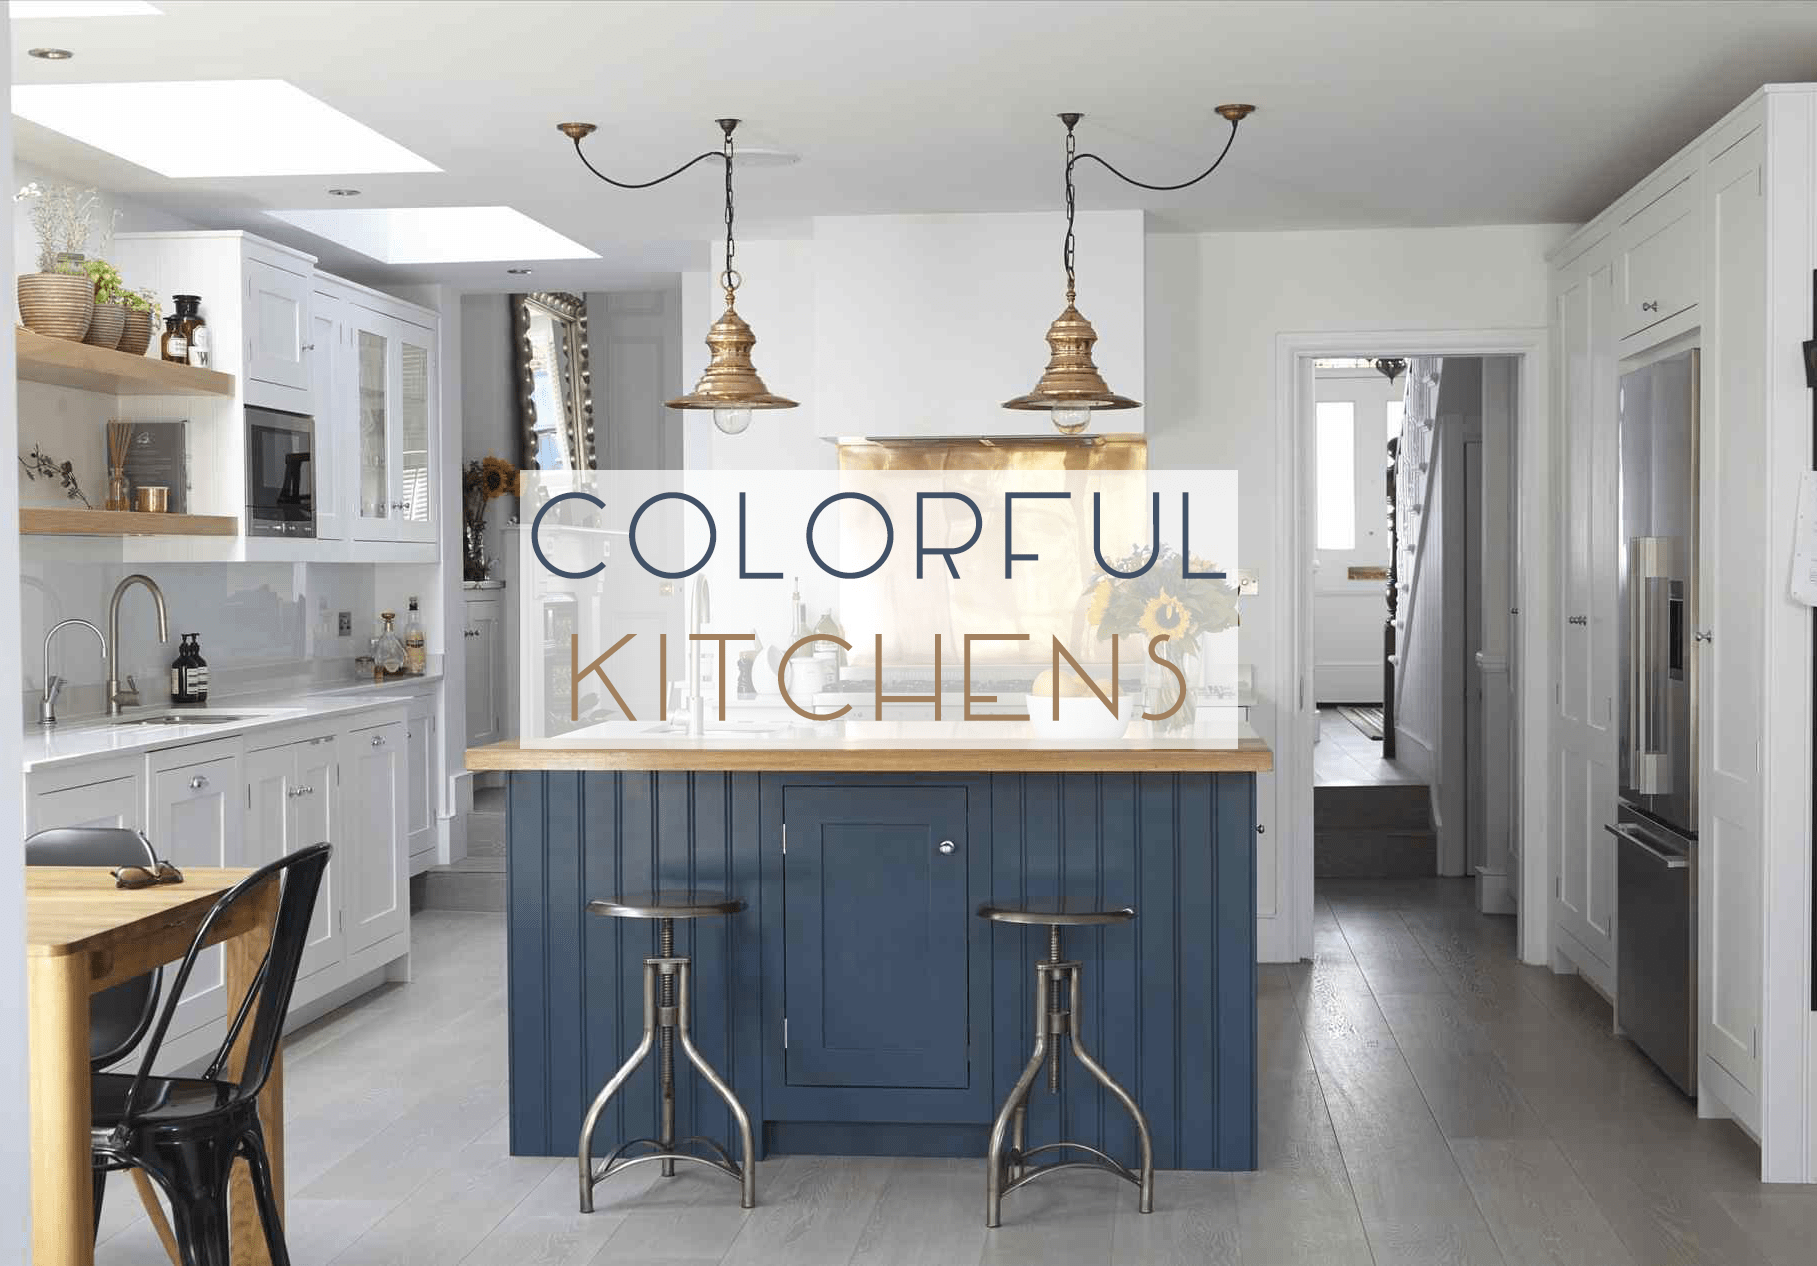 Prime 5 Colorful Kitchens We Love Instagram Catherine French Caraccident5 Cool Chair Designs And Ideas Caraccident5Info